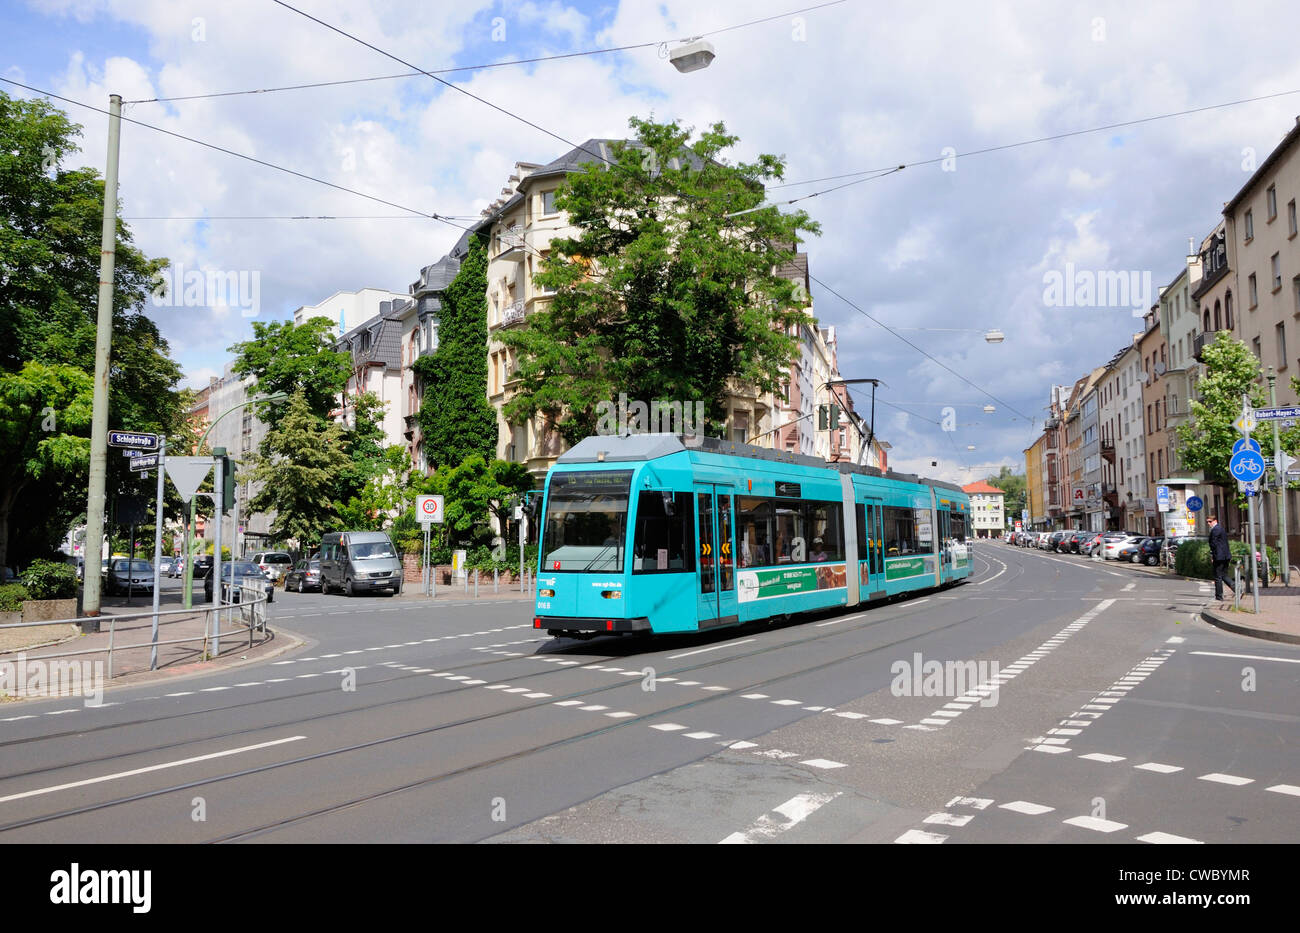 The No. 16 tram at the junction of Robert-Mayer-Strasse and Schlosstrasse, Frankfurt, Germany - Stock Image